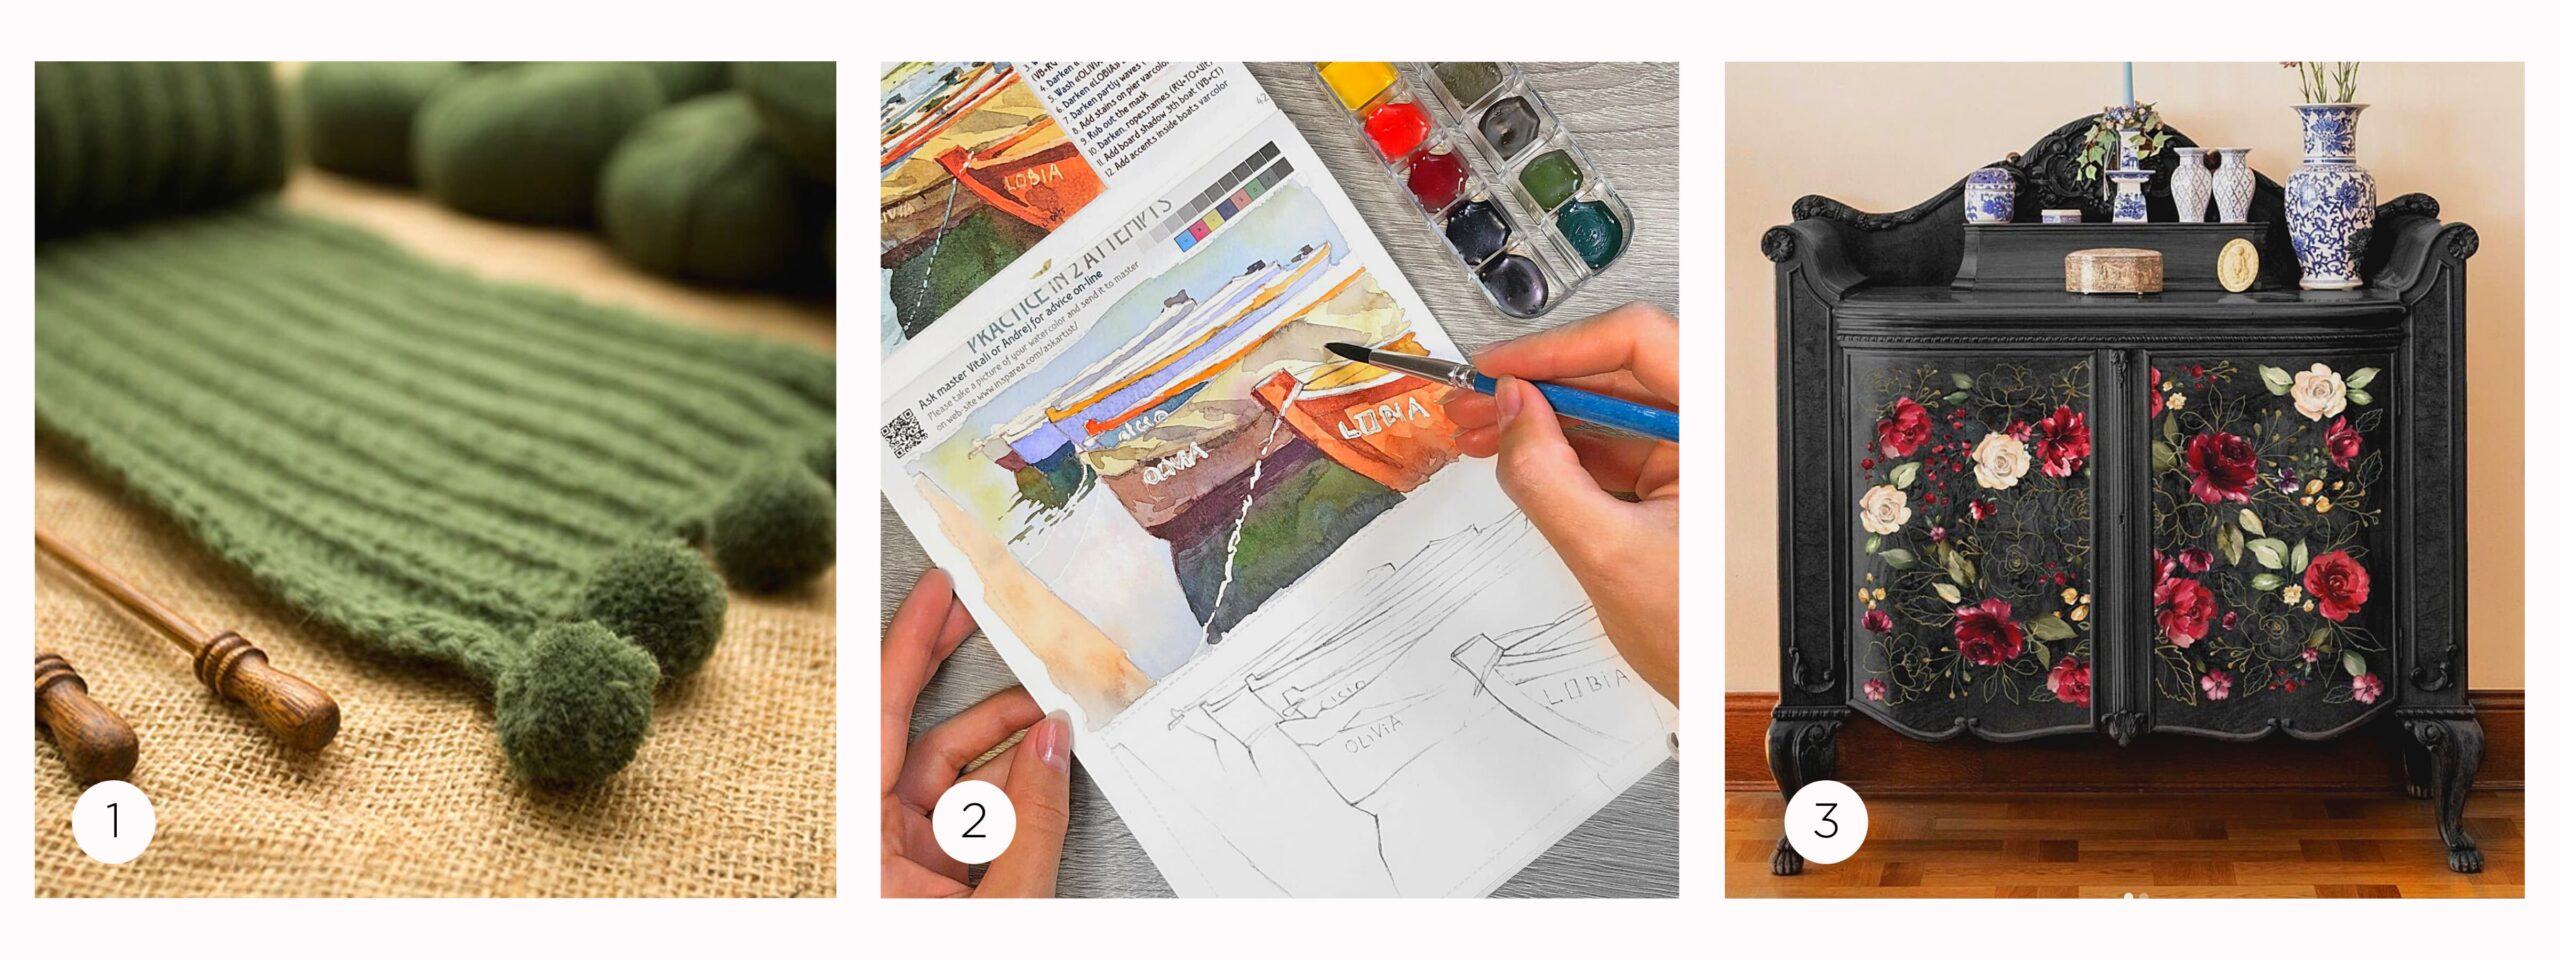 this is an etsy feed for creative projects